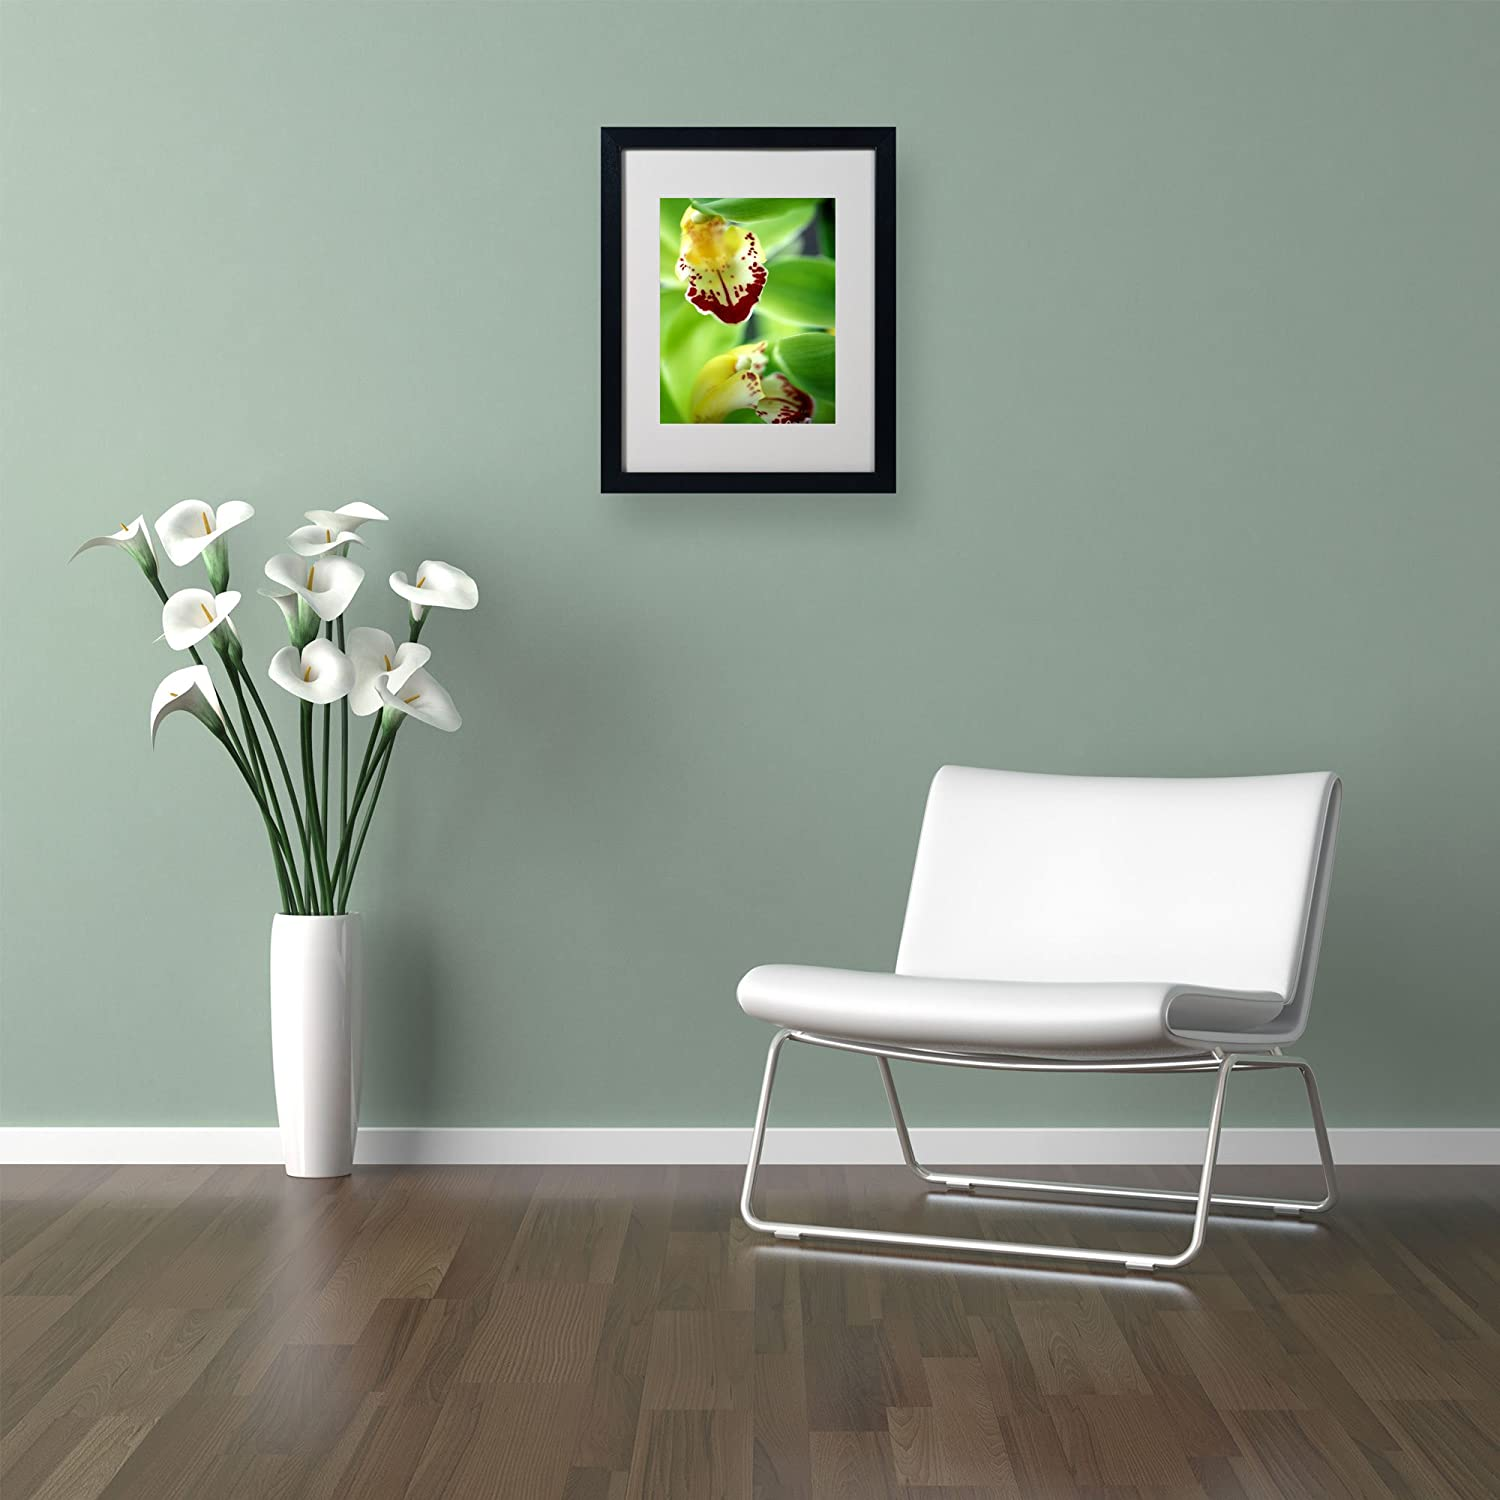 Amazon Com Cymbidium Seafoam Emerald Orchid Matted Framed Art By Kathy Yates With Black Frame 11 By 14 Inch Framed Prints Posters Prints